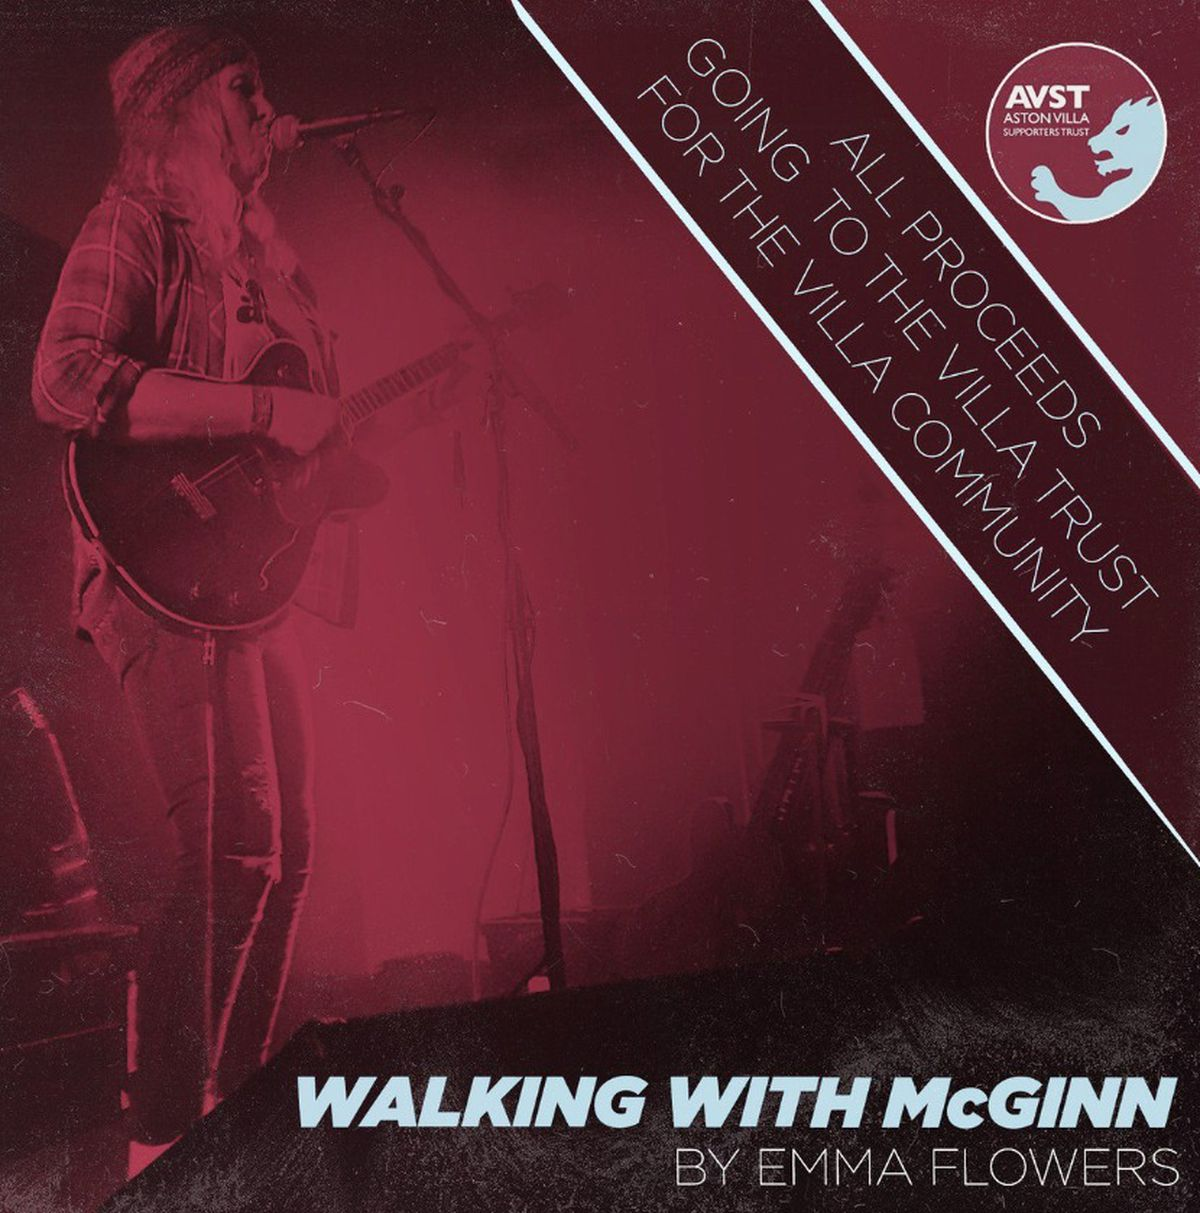 Walking with McGinn is priced at £1.50